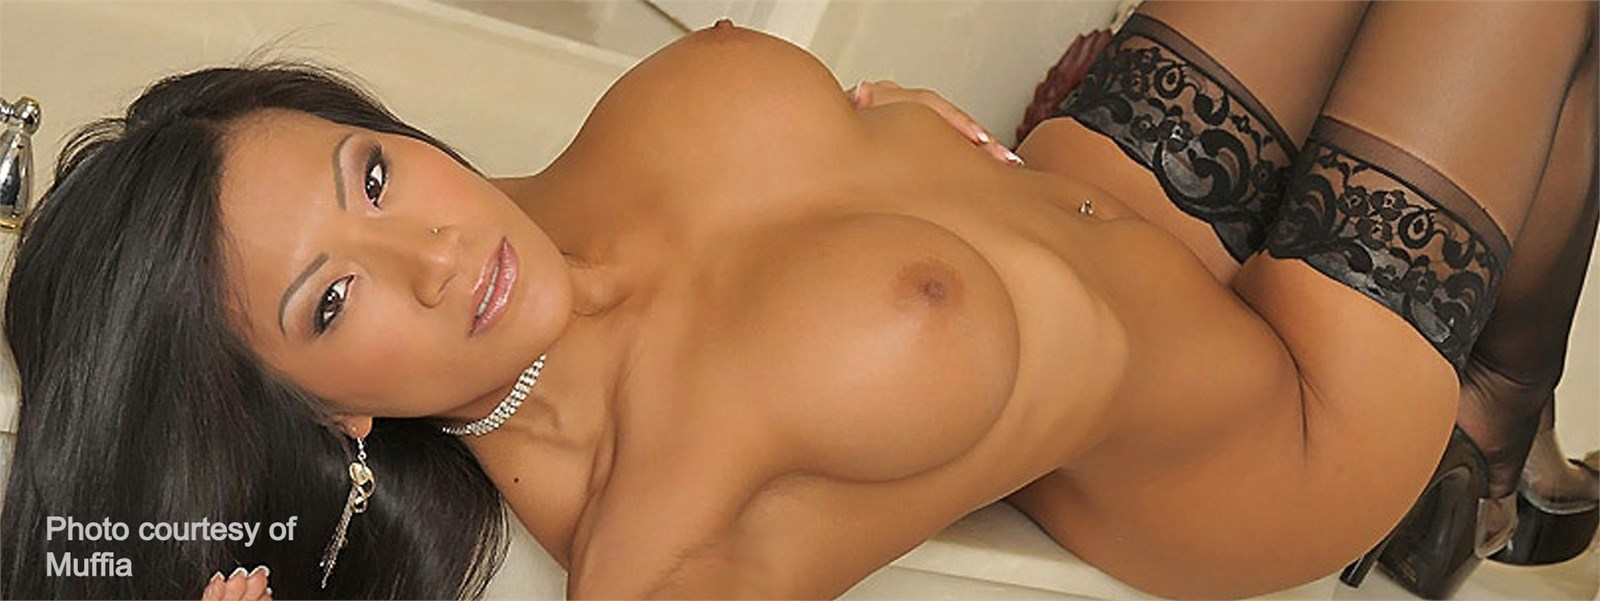 Christina Angel - Boobpedia - Encyclopedia of big boobs